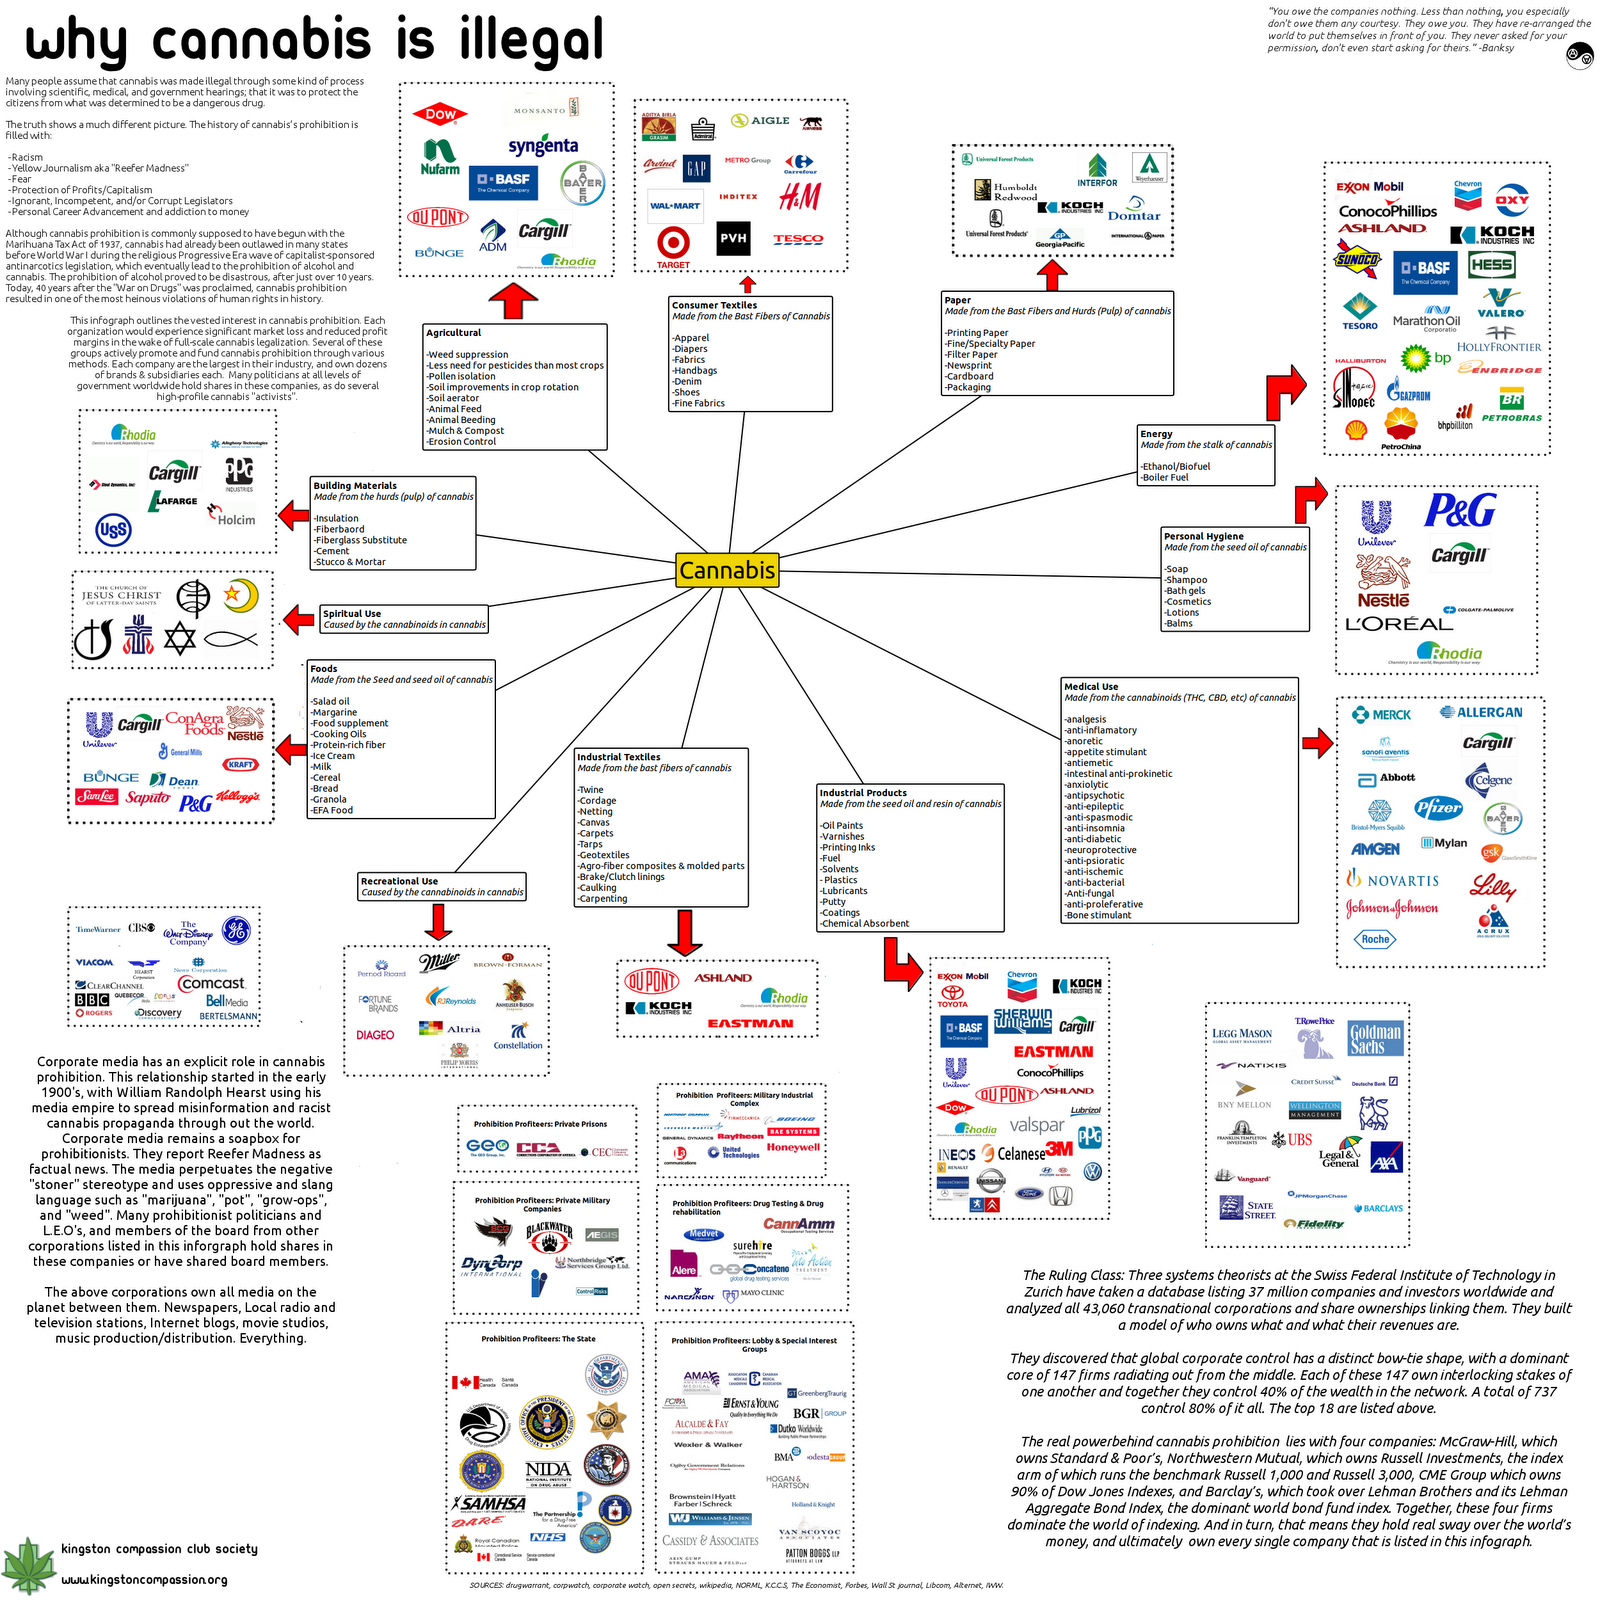 legalization of cannabis See also countries that have legalized medical use of cannabis the legality of  cannabis for medical and recreational use varies by country, in terms of its.